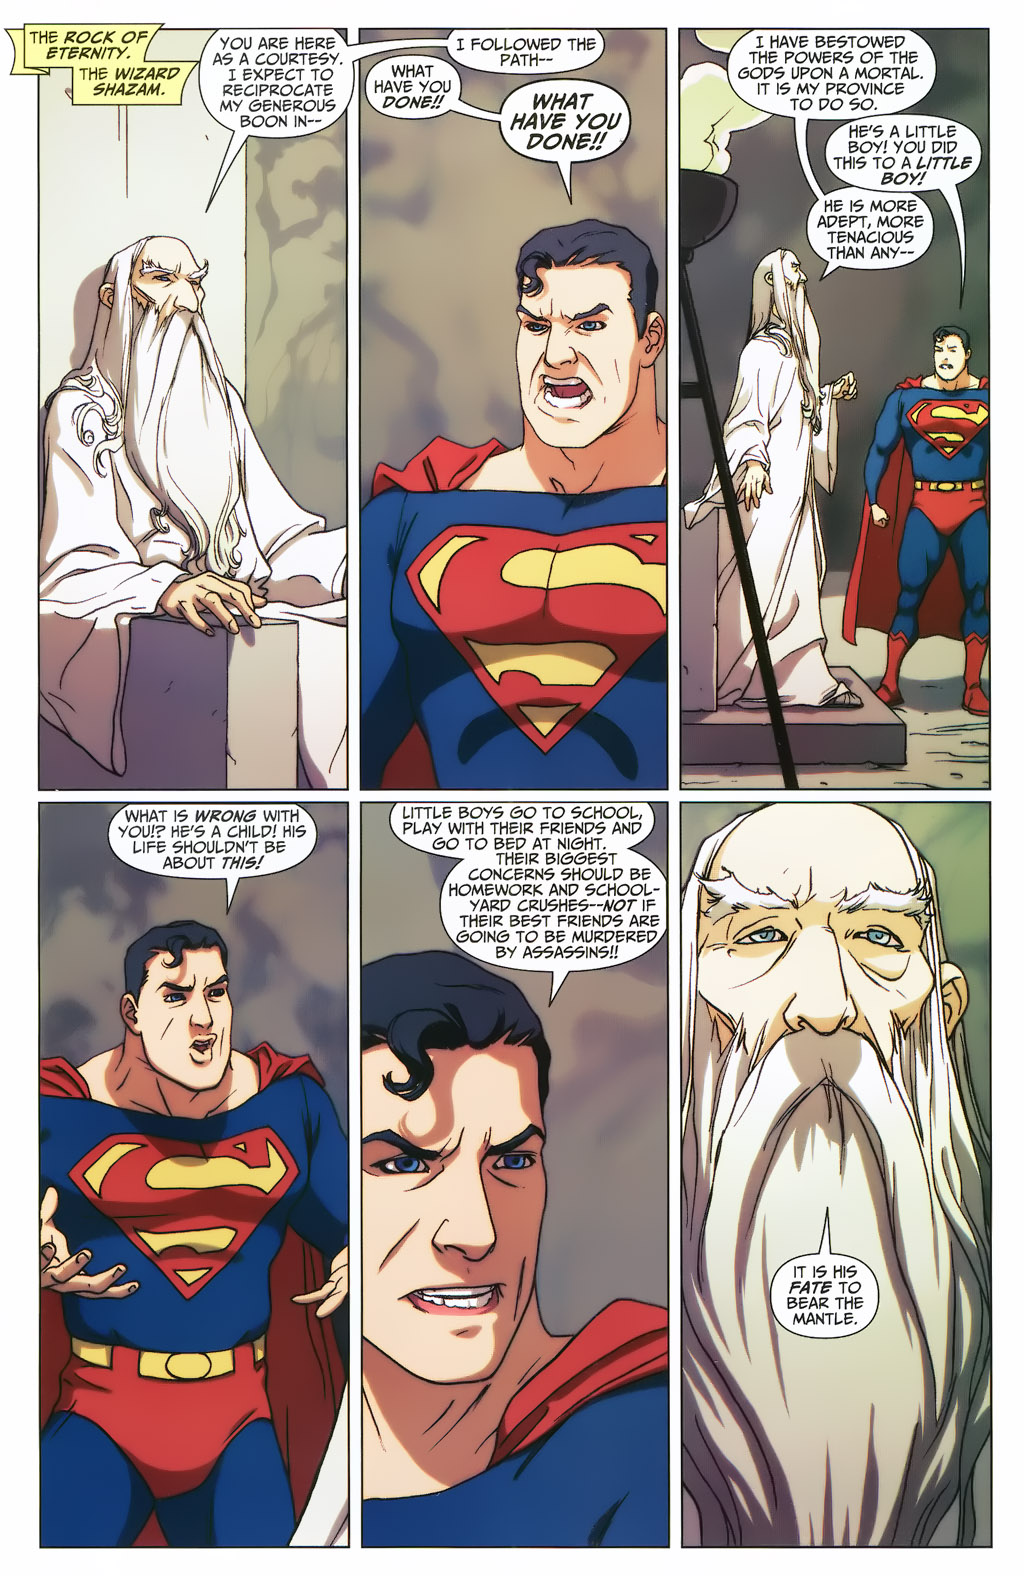 Superman Confronts The Wizard Shazam (First Thunder)